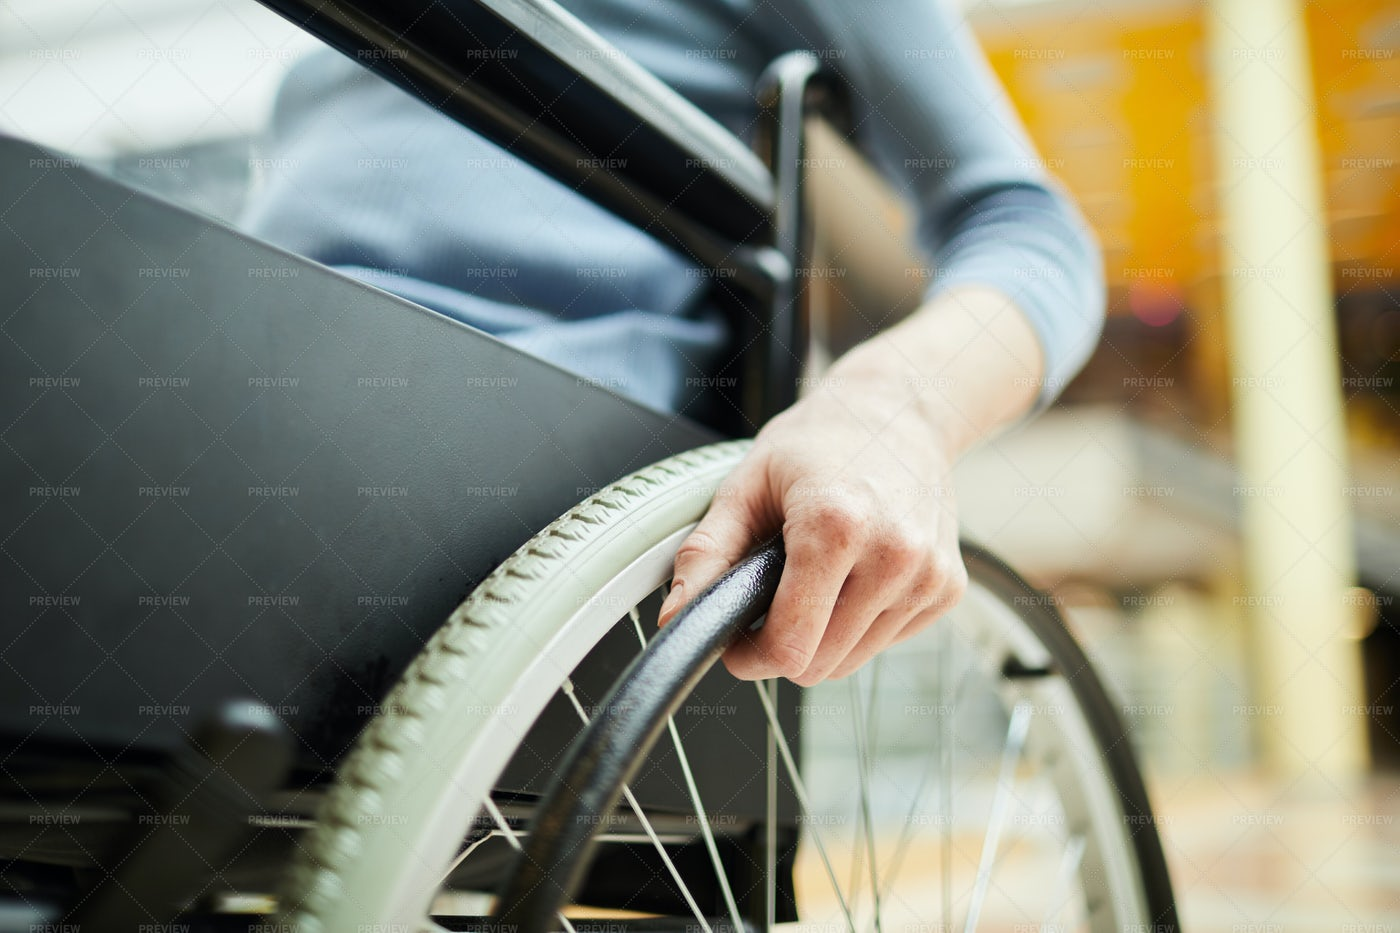 Disabled Patient In Wheelcair: Stock Photos